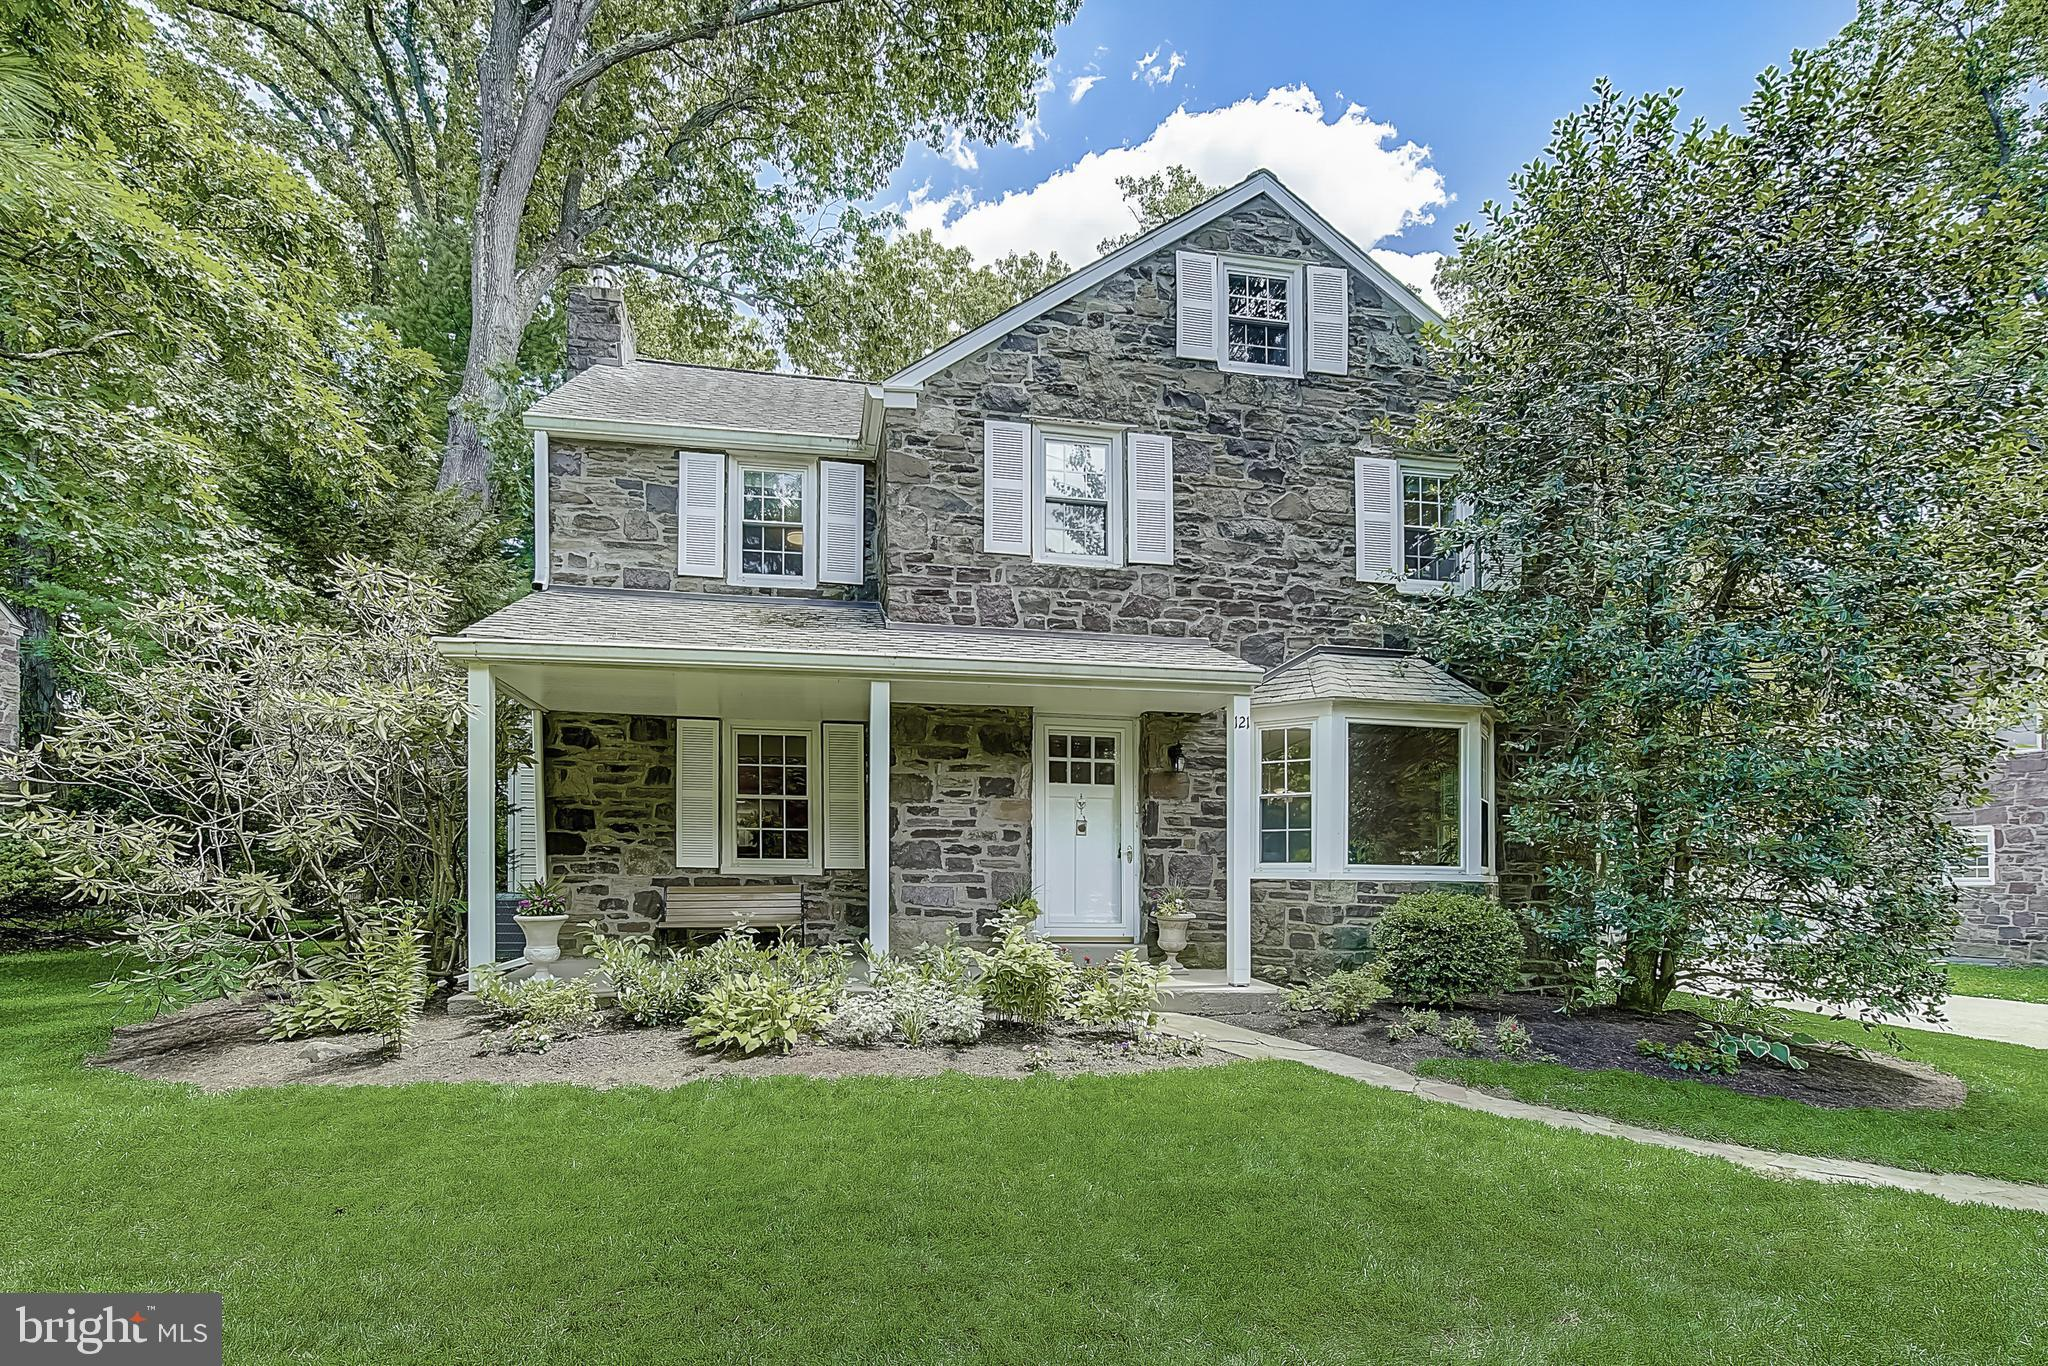 Don't miss this beautiful stone colonial in the sought-after Haverford School District! This charming home has been lovingly maintained and features several desirable details and upgrades, including crown molding, first floor hardwood floors, new carpeting, upgraded windows, skylights throughout the home, recessed lighting and a two-car garage. The main level features an upgraded kitchen with Subzero refrigerator and reverse osmosis water filtration system, as well as a formal dining room with a large bay window, and a family room with double-doors leading to the spacious refinished rear deck overlooking the private backyard. The second floor offers 4 bedrooms, including the Primary Bedroom Suite featuring Cathedral ceilings, skylights, double closets and an ensuite bath complete with a large whirlpool tub. Laundry is also located on the second floor for convenience. Enjoy plenty of storage in walk-up attic and partially finished basement. Located in close proximity to the SEPTA high speed line and regional rail, easy access to 476, and plenty of shopping & eateries. Close to Haverford Community Center, Elementary School, multiple parks and playgrounds. This is the one!